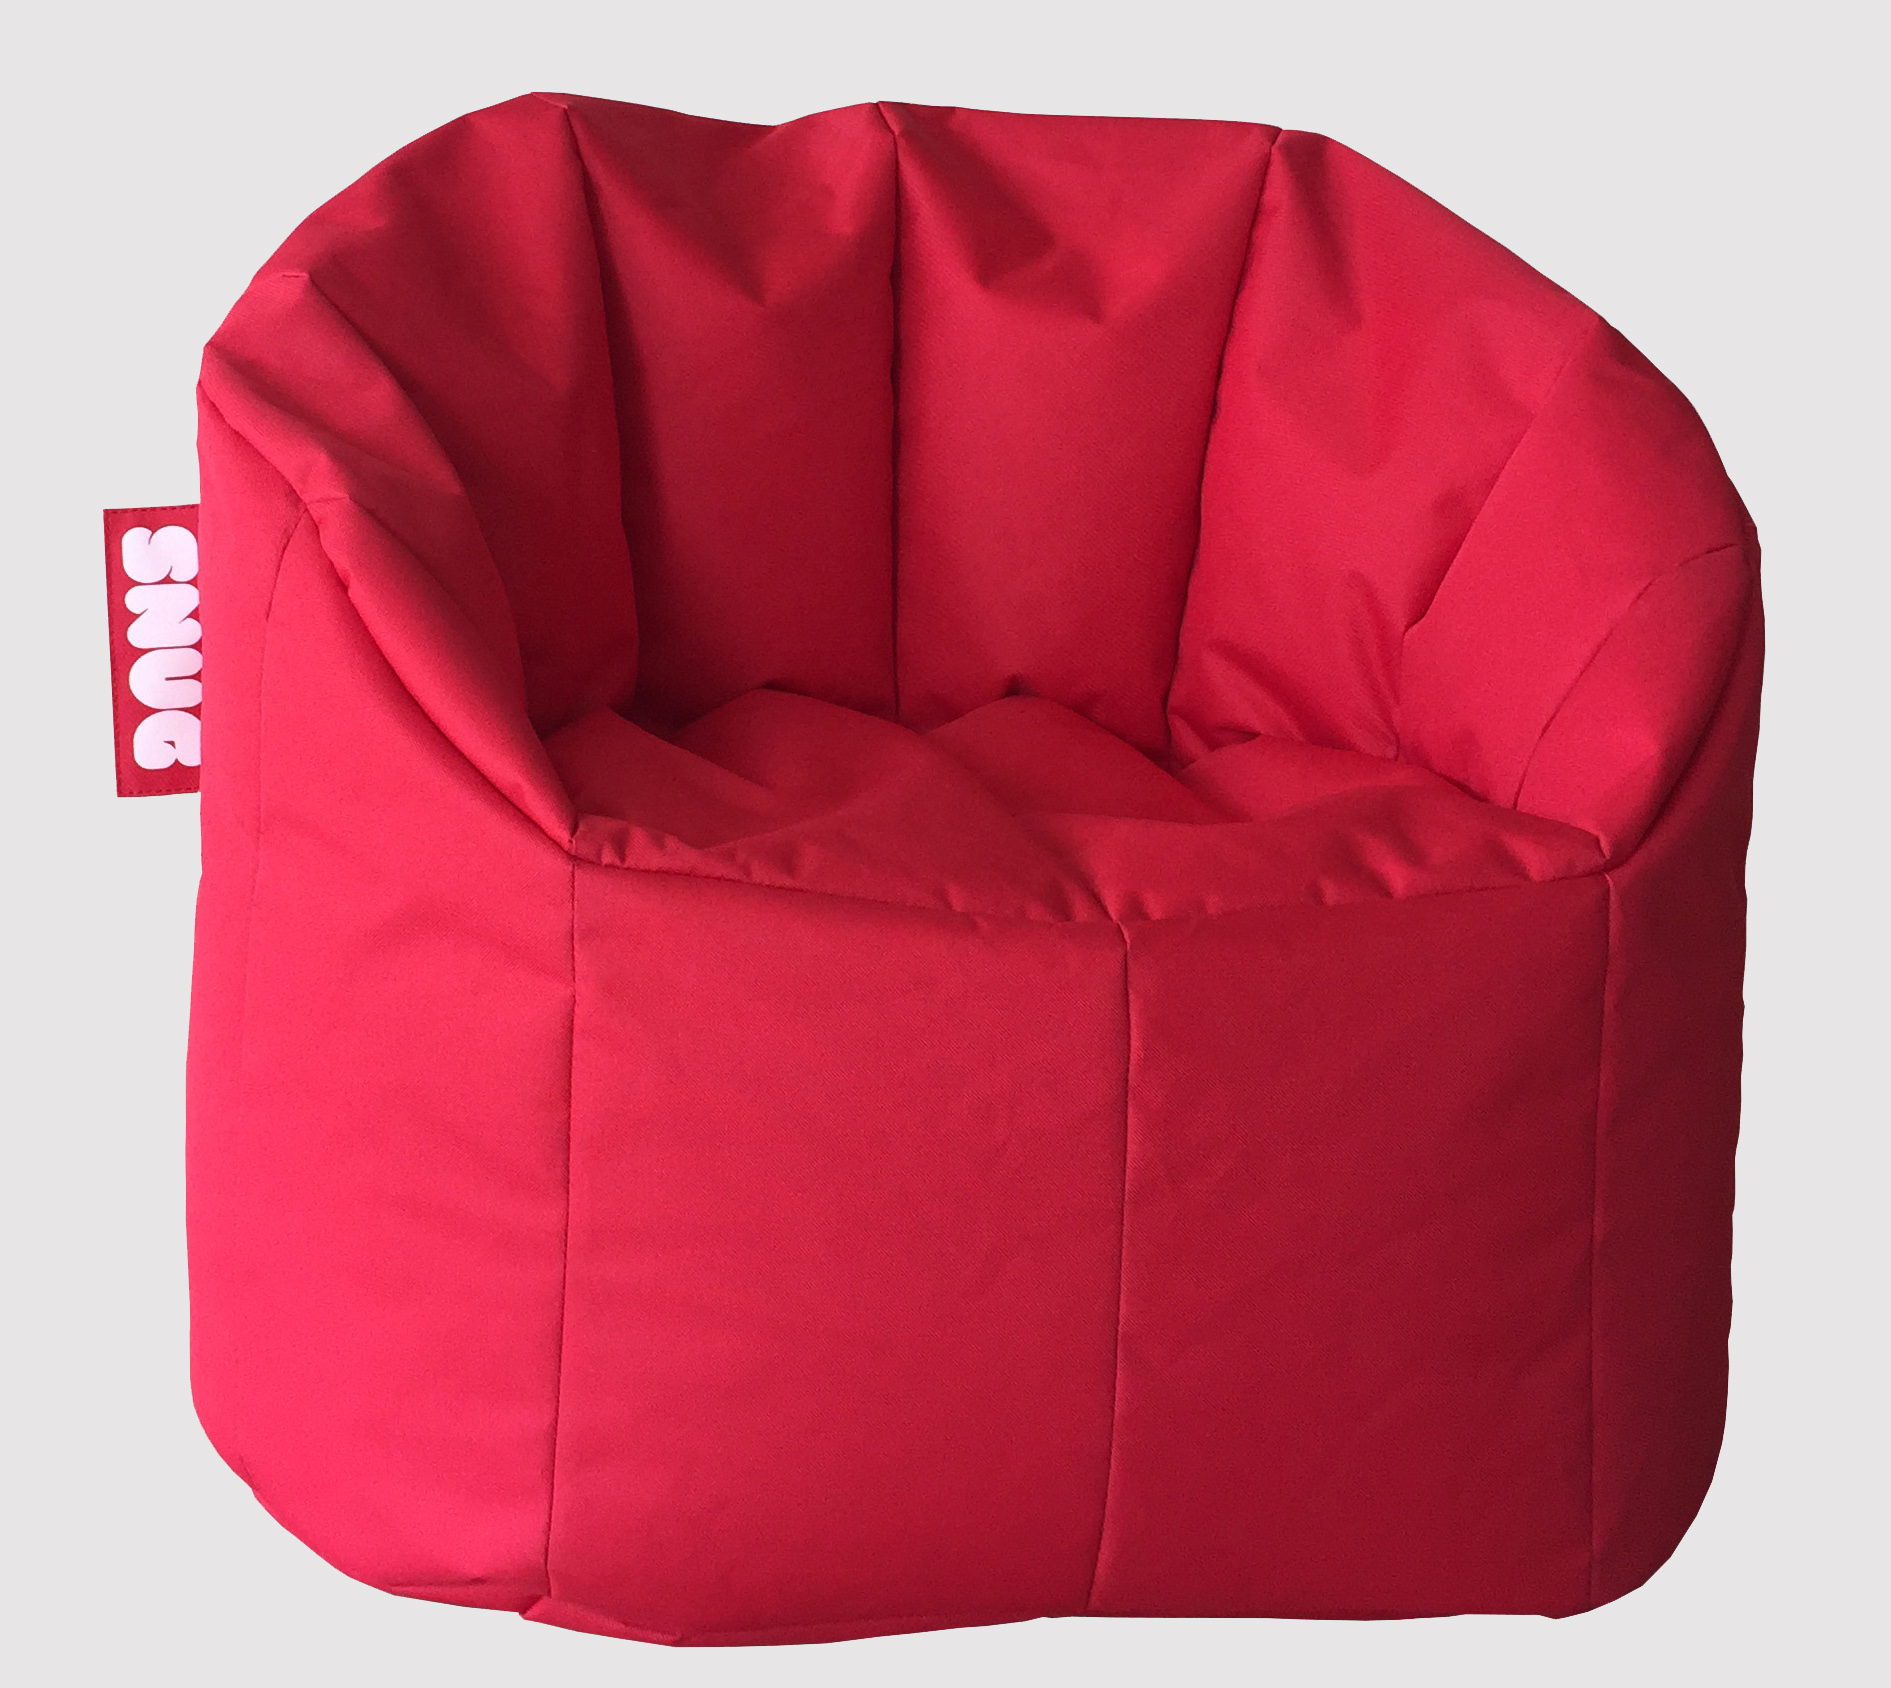 Bean Bags Relaxing Chairs Big Cushions And Beanbags